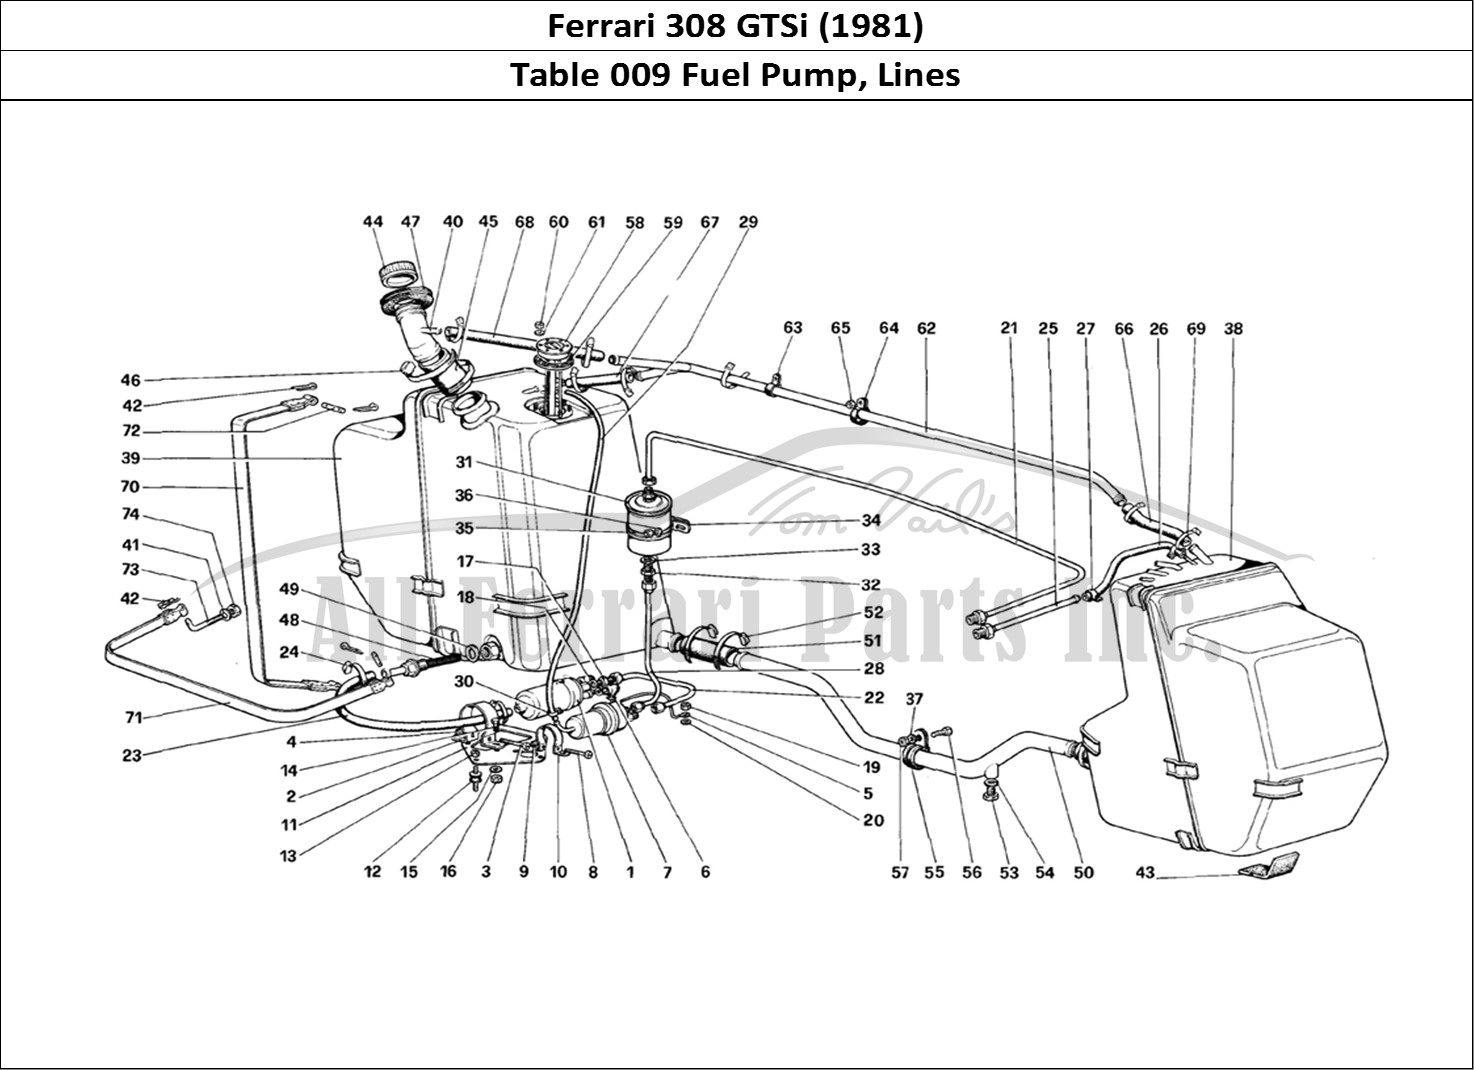 buy original ferrari 308 gtsi  1981  009 fuel pump  lines